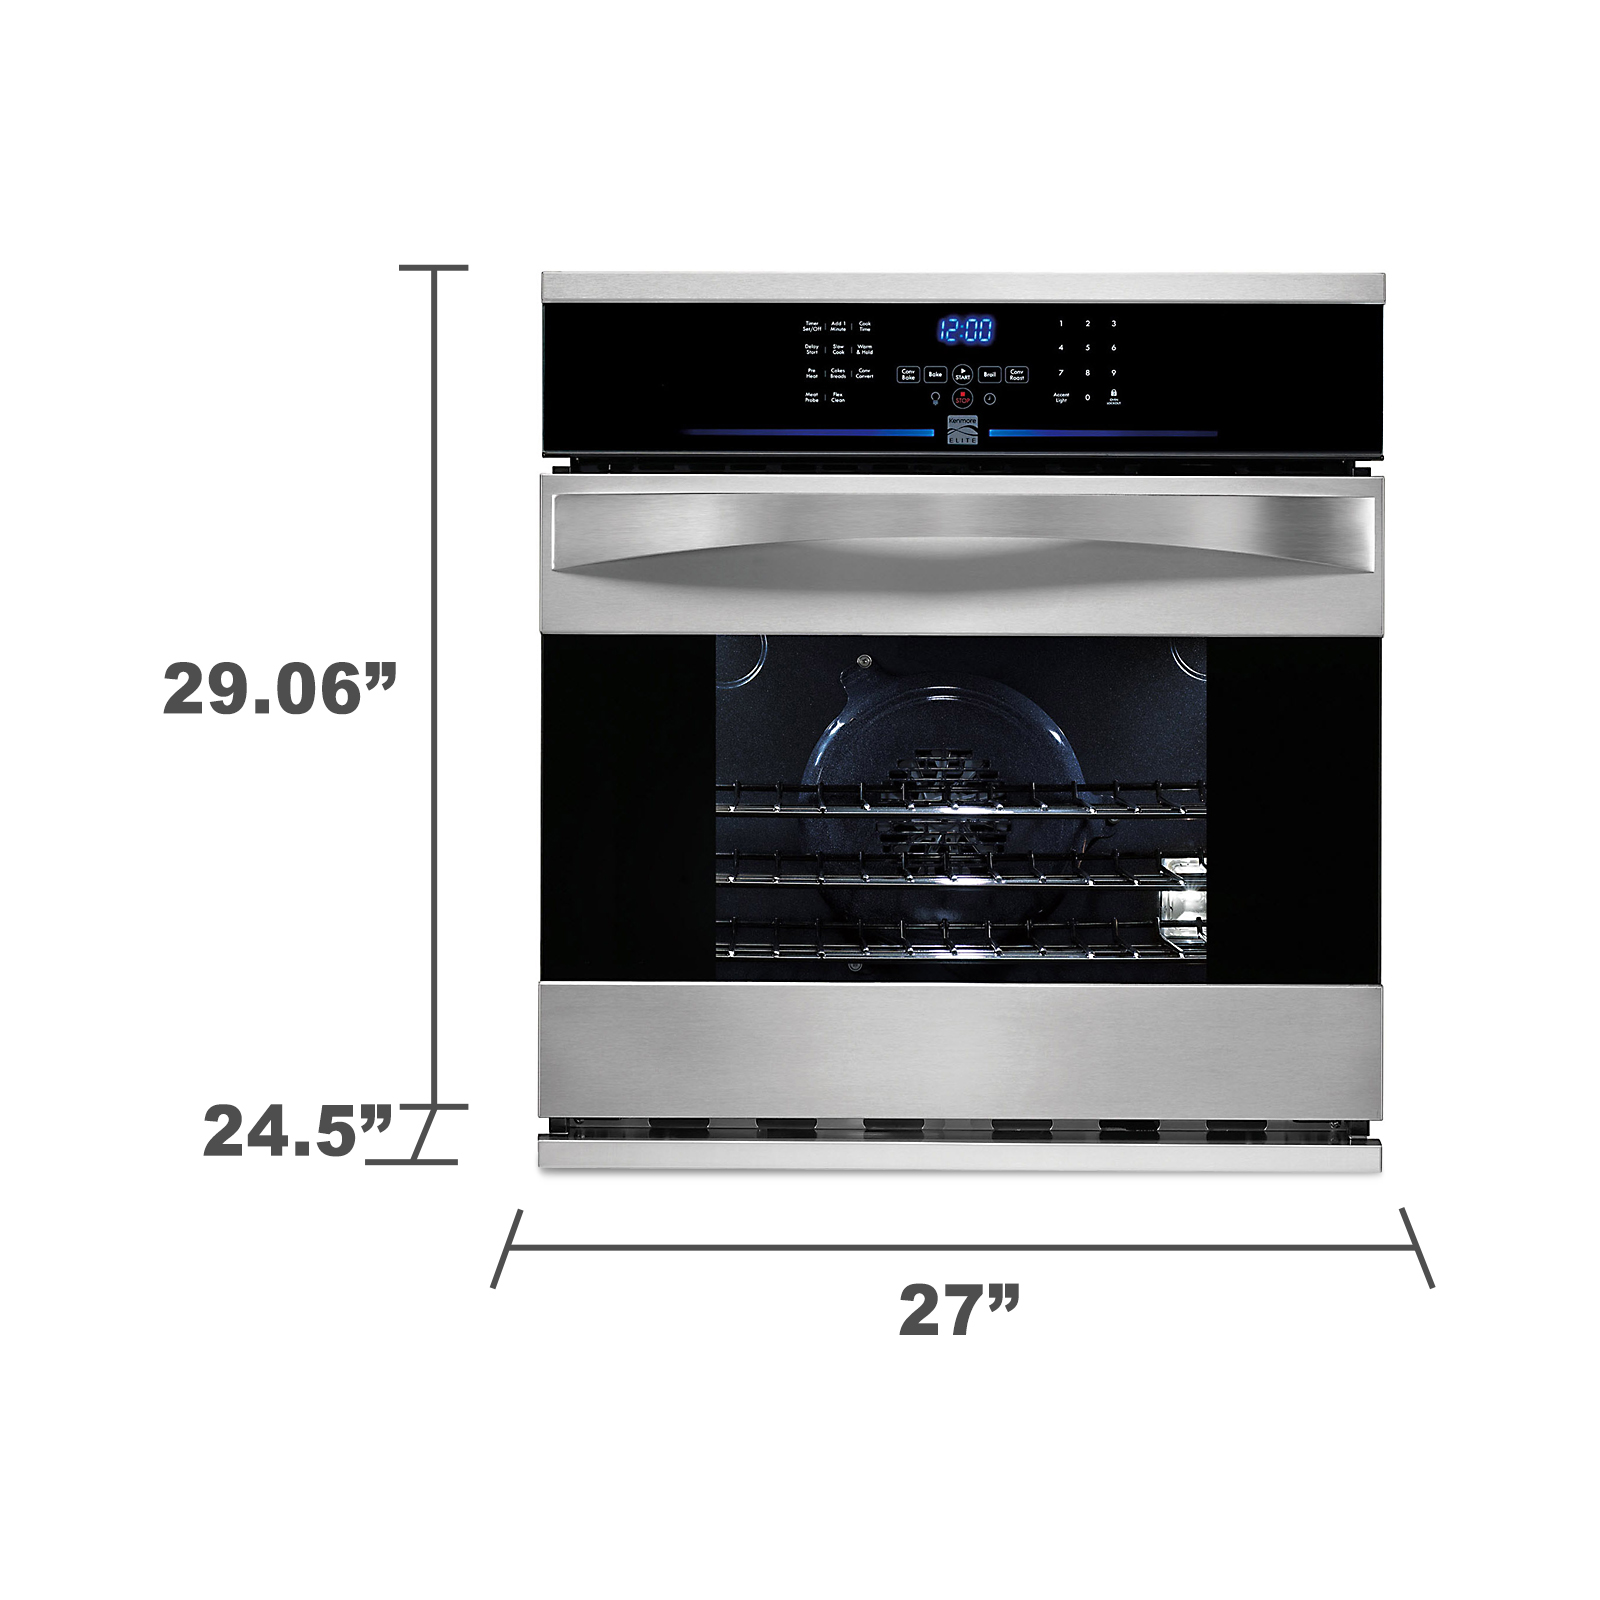 "Kenmore Elite 27"" Electric Self-Clean Single Wall Oven 4807"